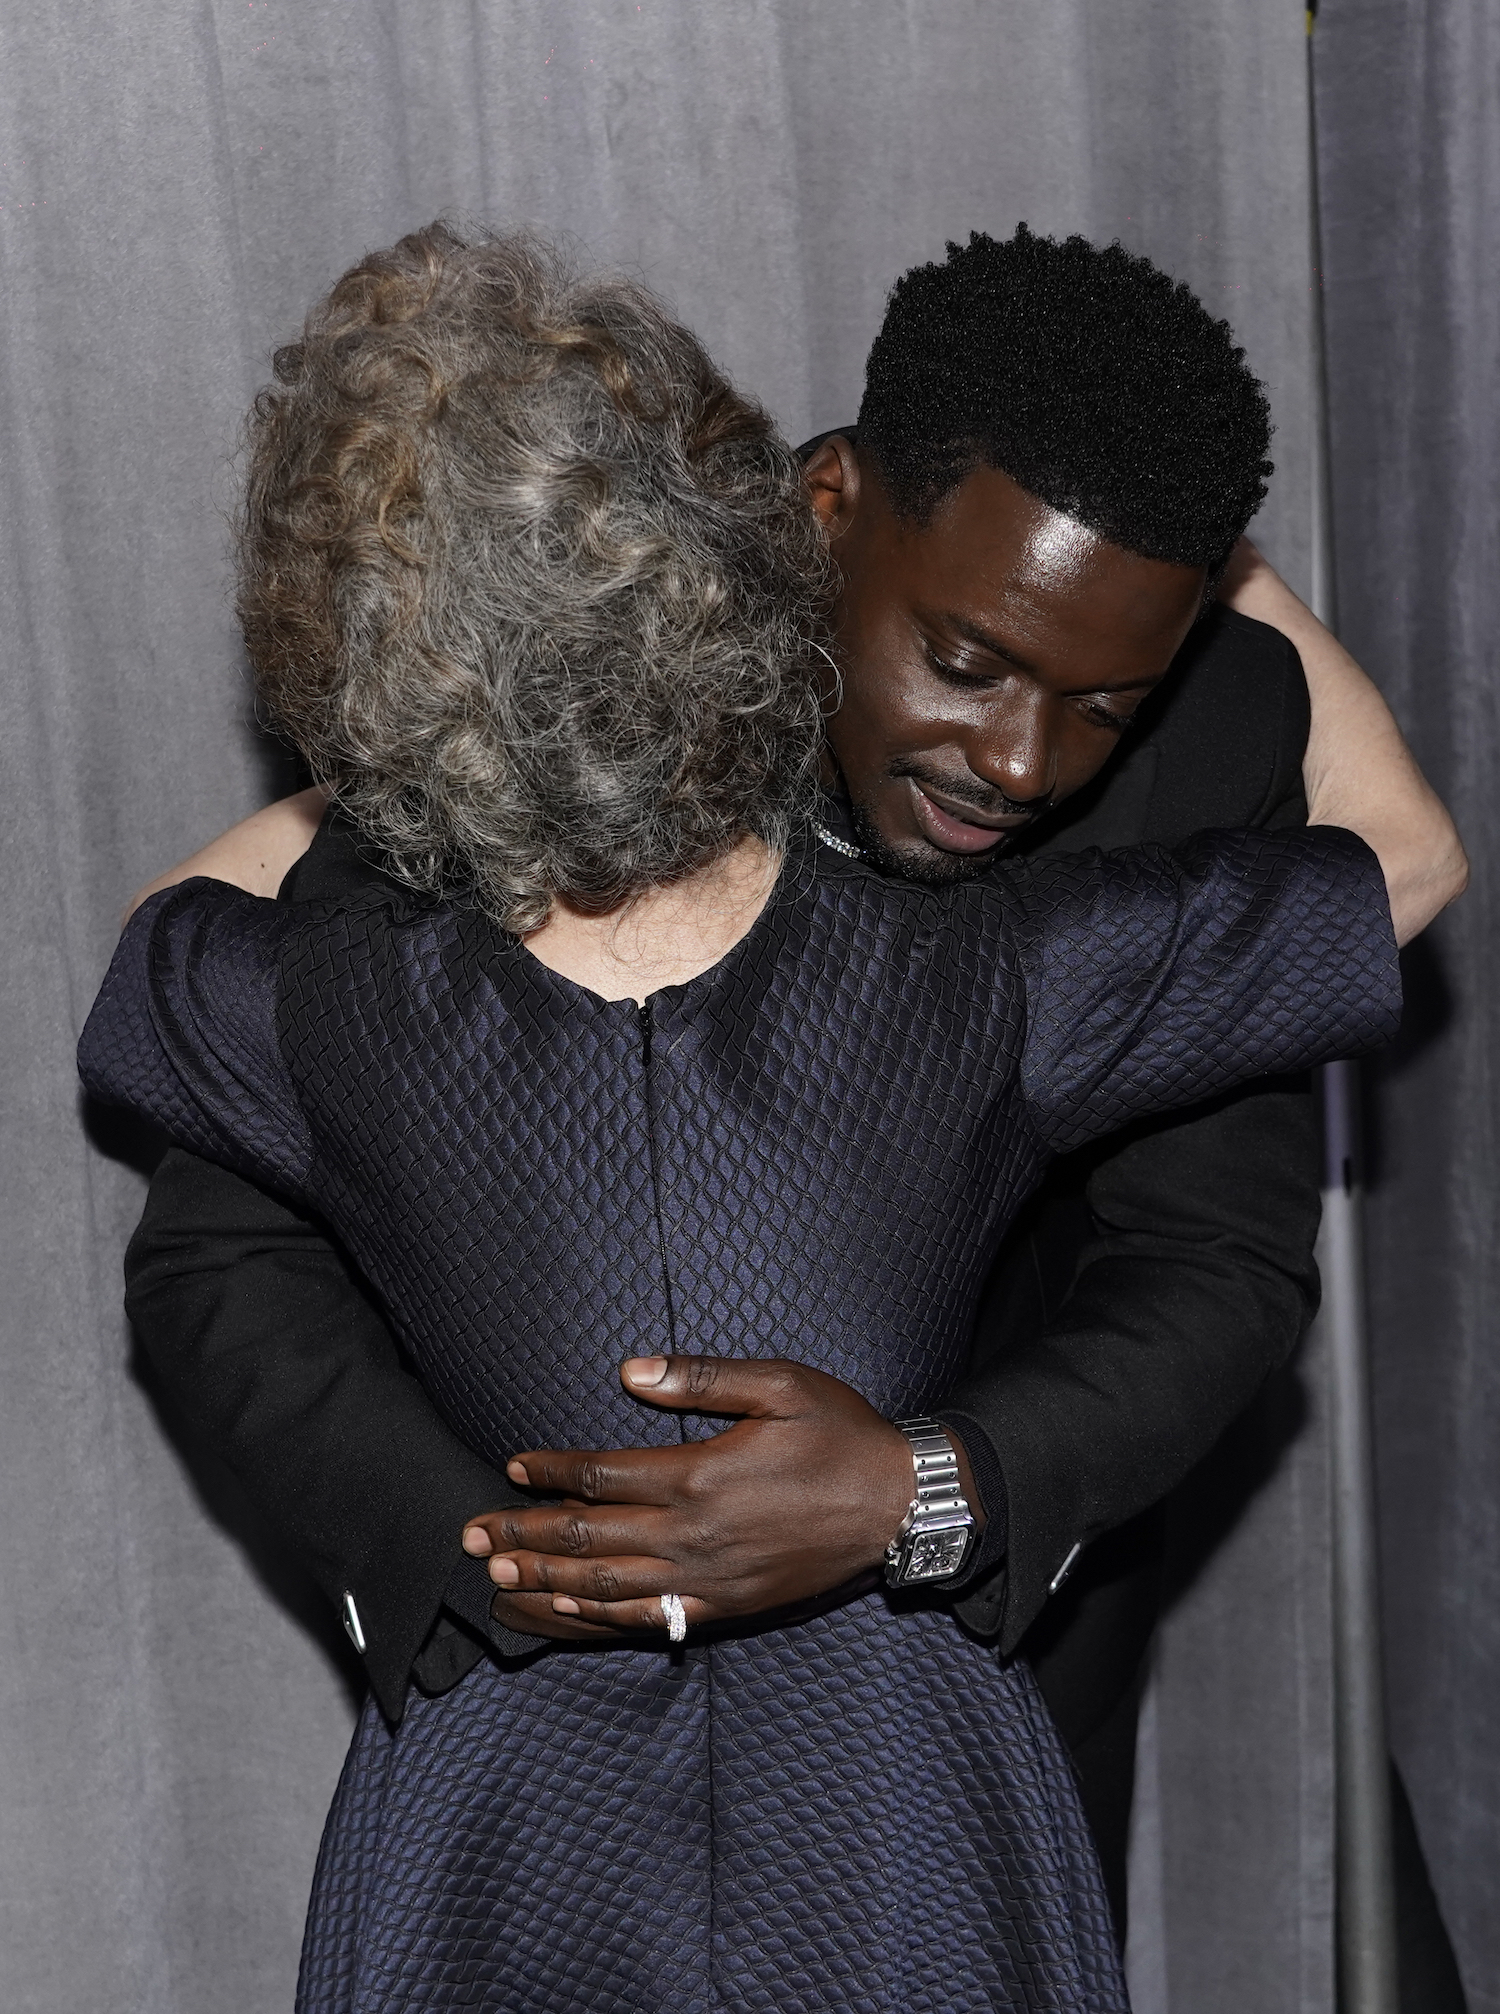 """Yuh-Jung Youn, left, winner of the award for best actress in a supporting role for """"Minari,"""" and Daniel Kaluuya, winner of the award for best actor in a supporting role for """"Judas and the Black Messiah,"""" hug outside the press room at the Oscars on Sunday, April 25, 2021, at Union Station in Los Angeles. (AP Photo/Chris Pizzello, Pool)"""